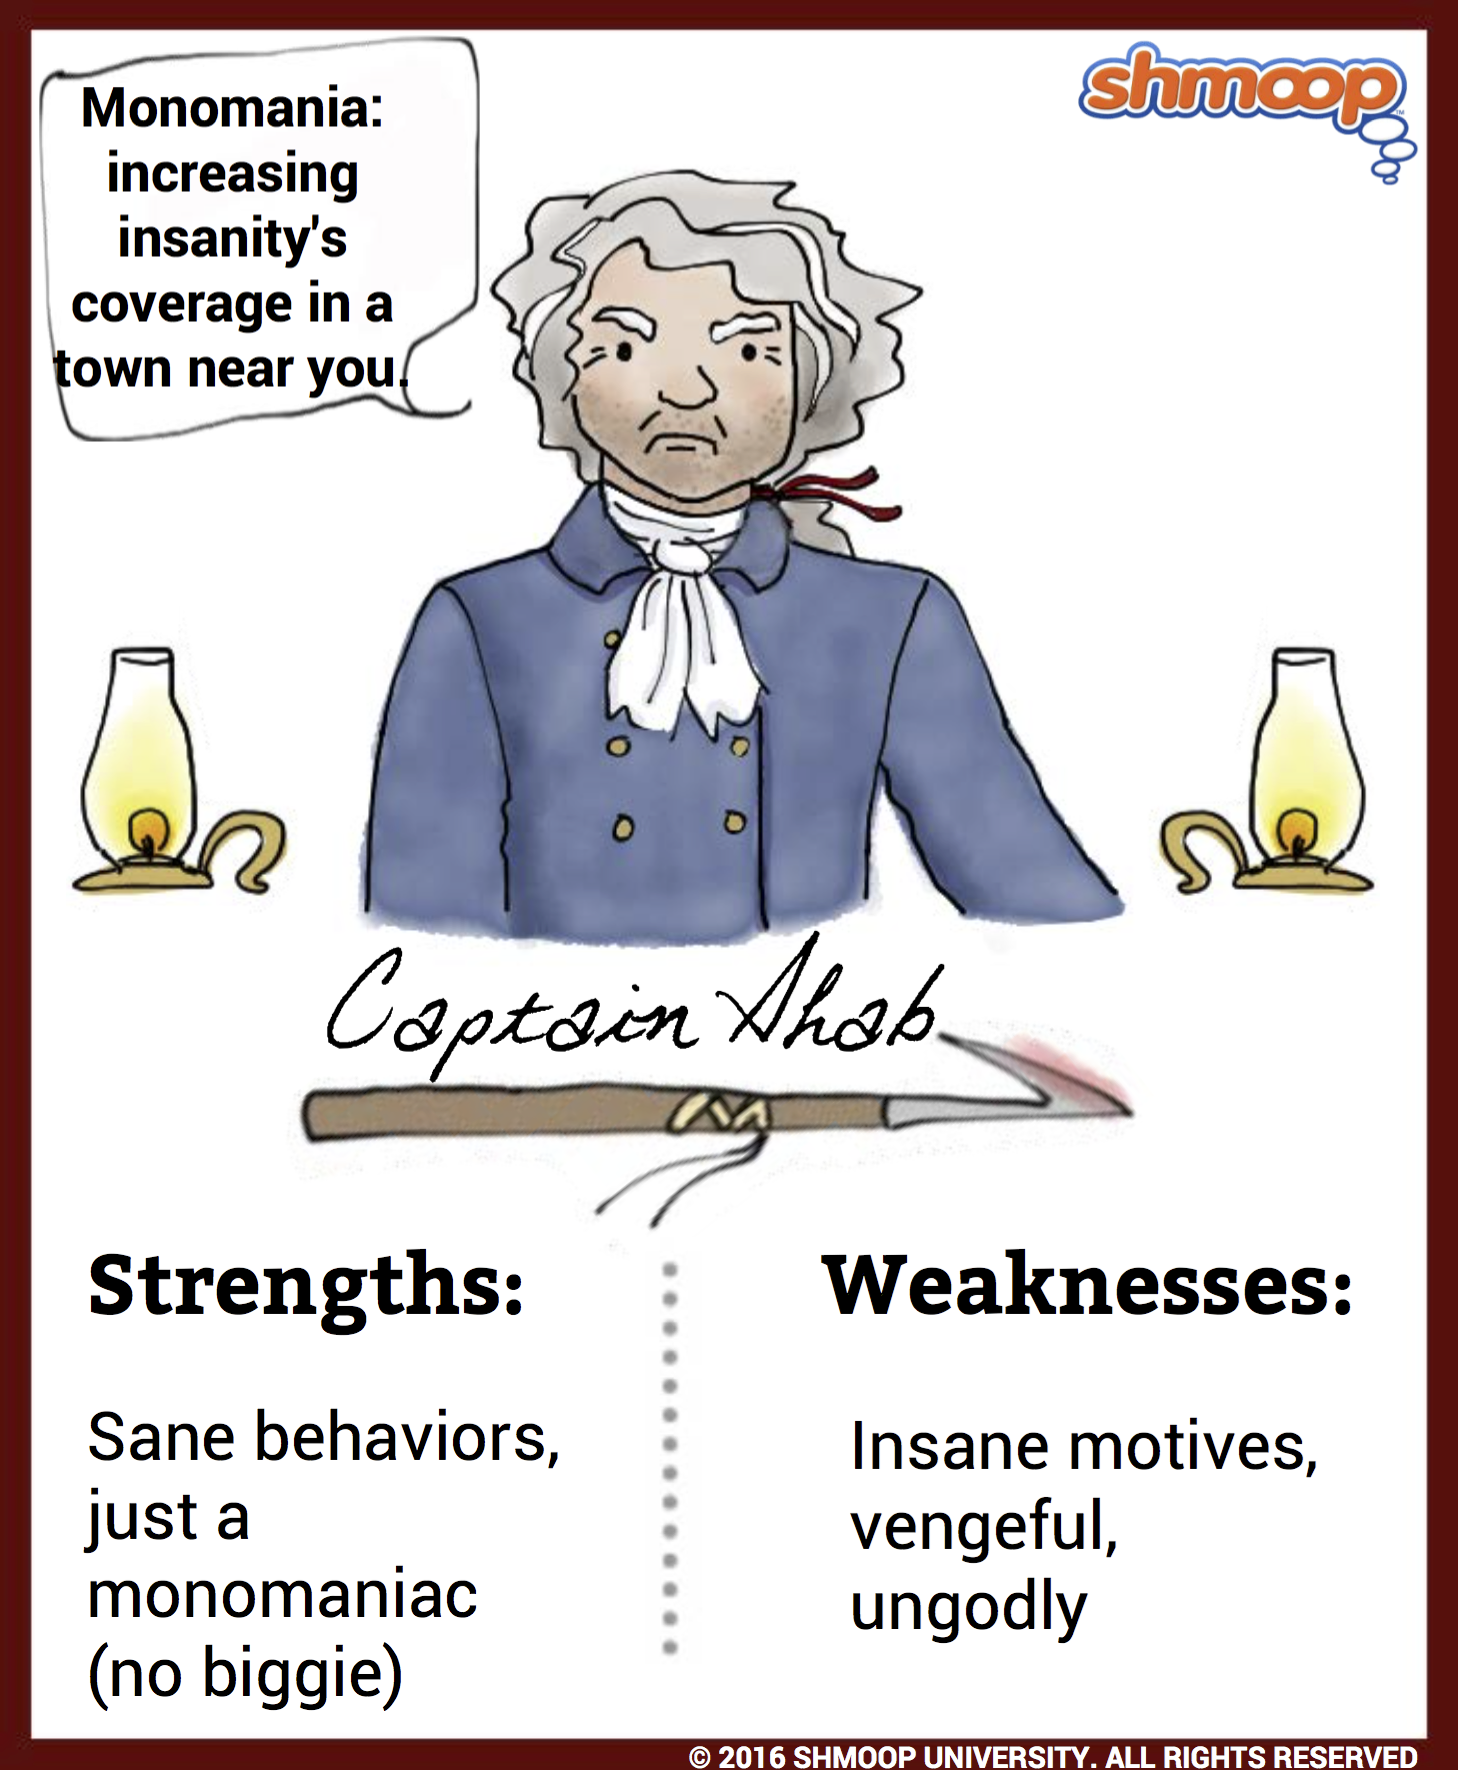 Everything you need to know about Captain Ahab